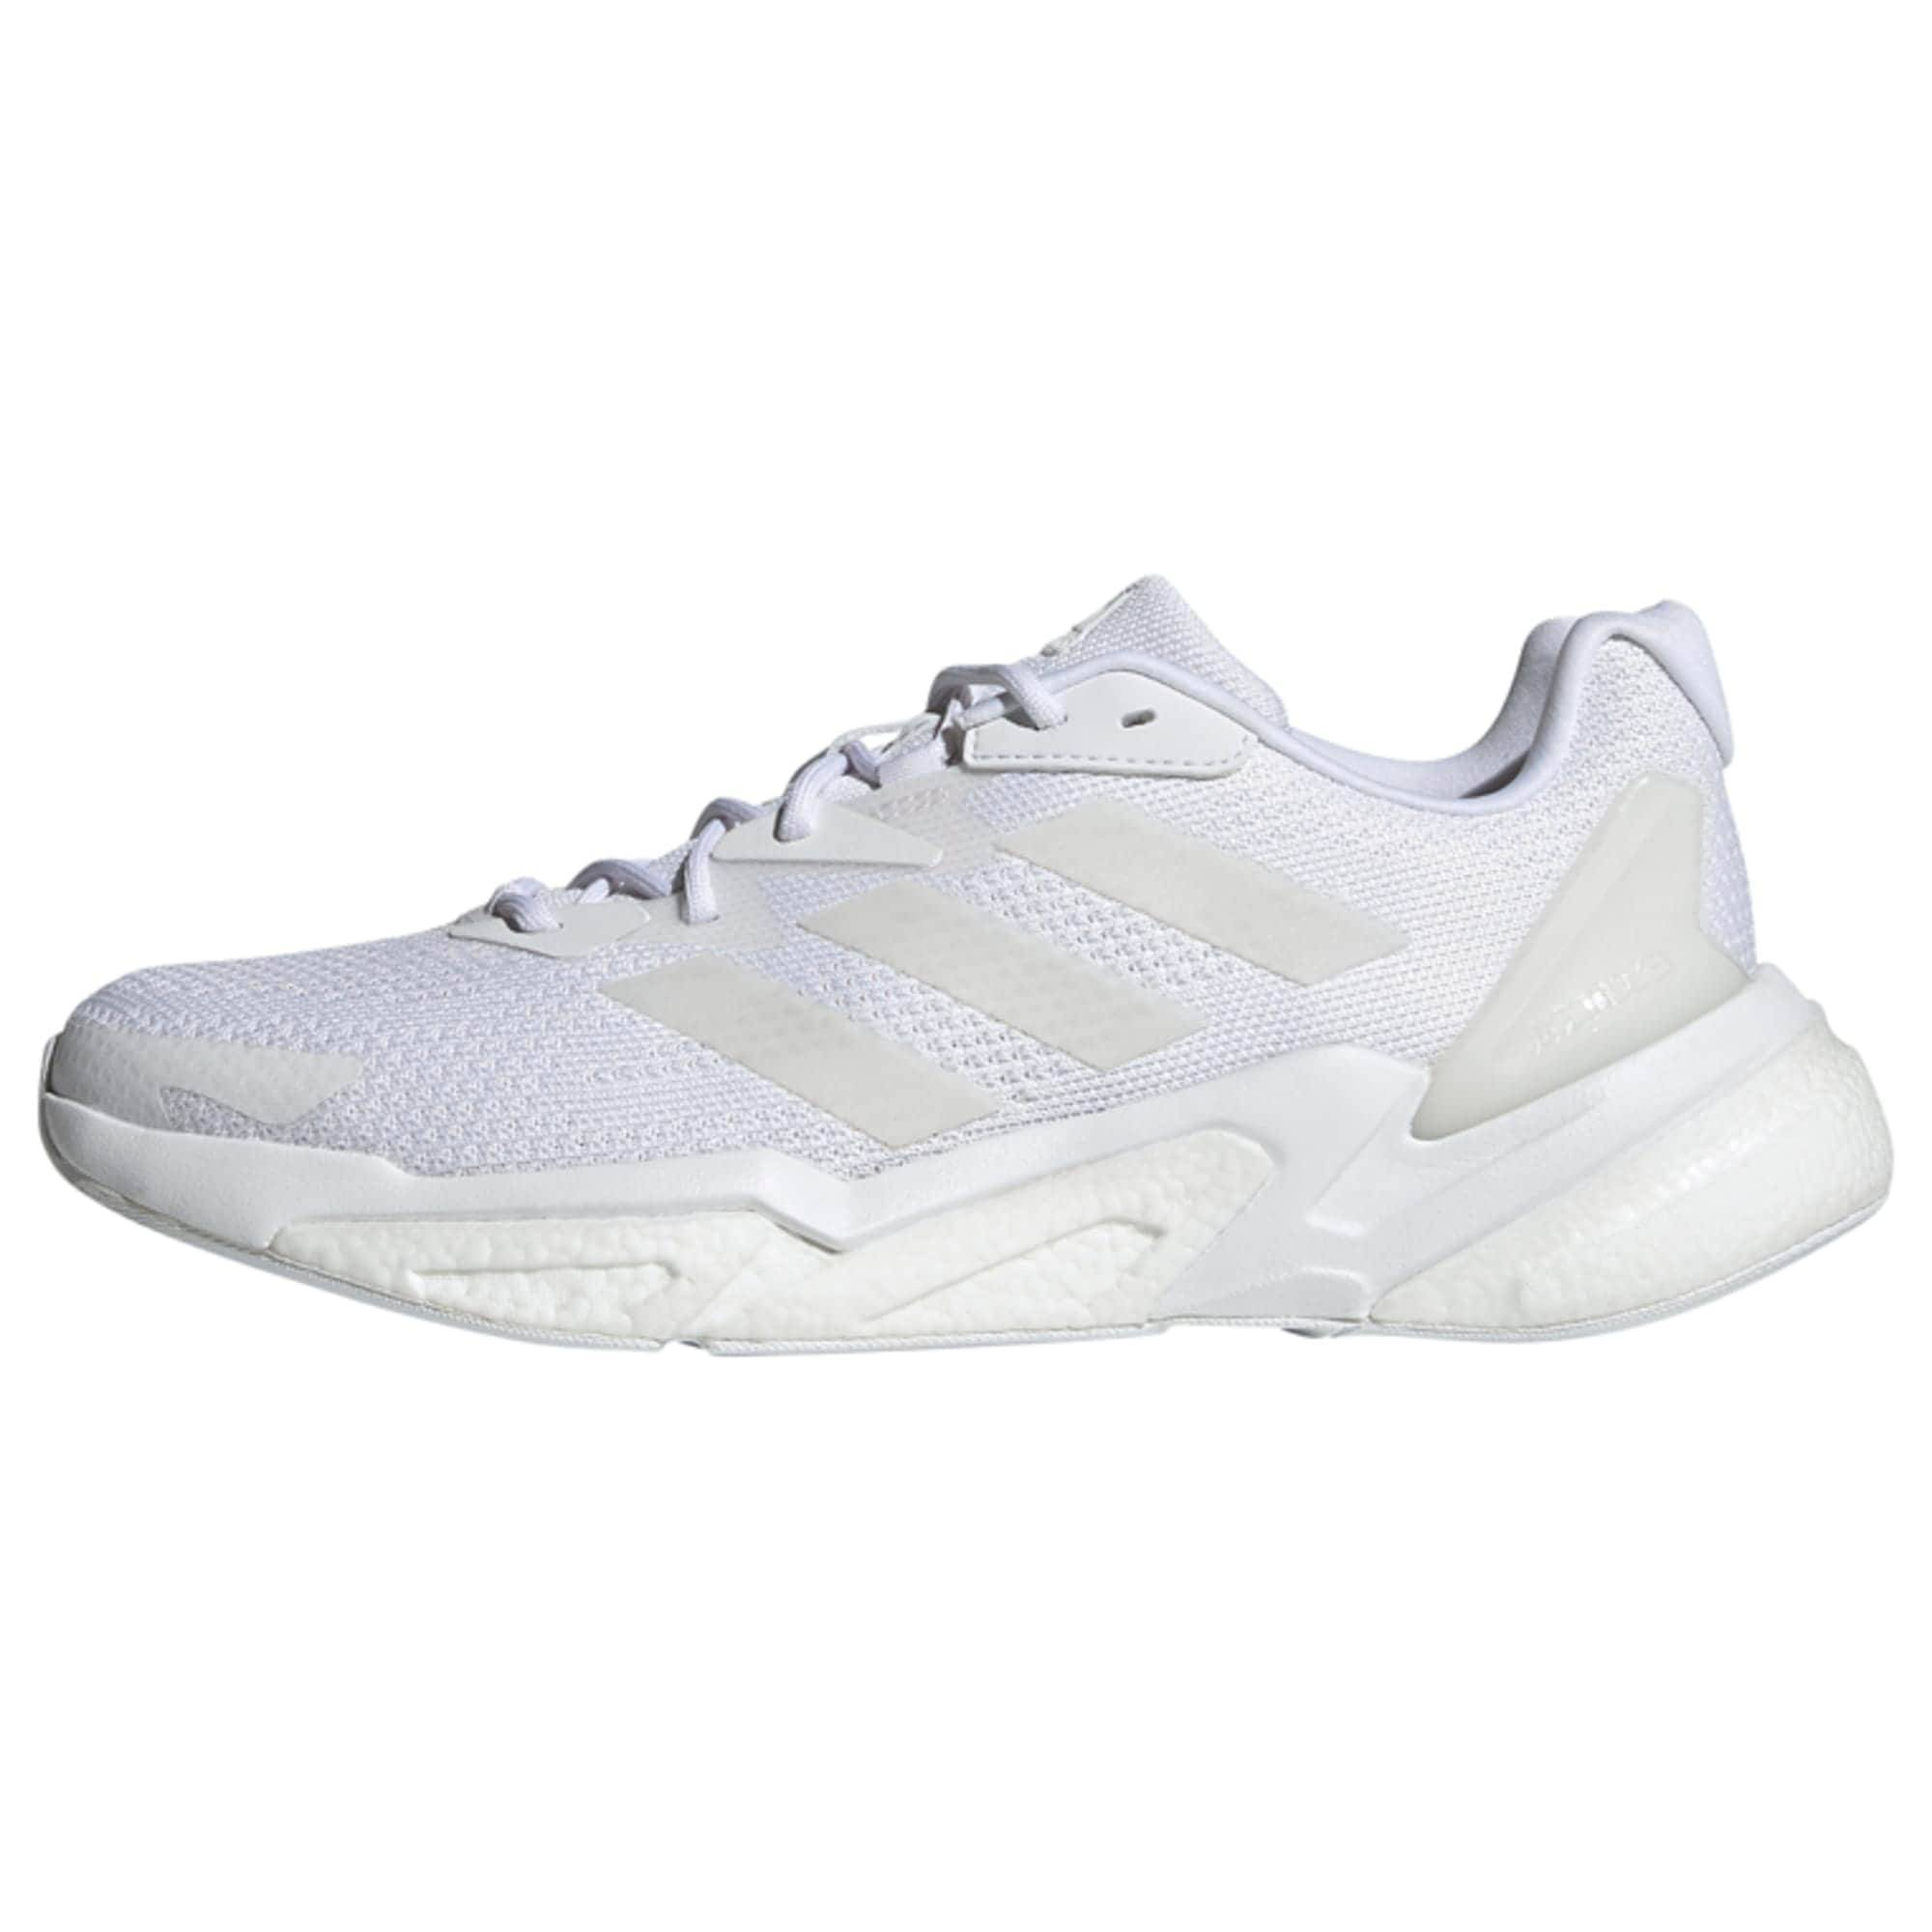 ADIDAS PERFORMANCE Chaussure de course  - Blanc - Taille: 9.5 - male